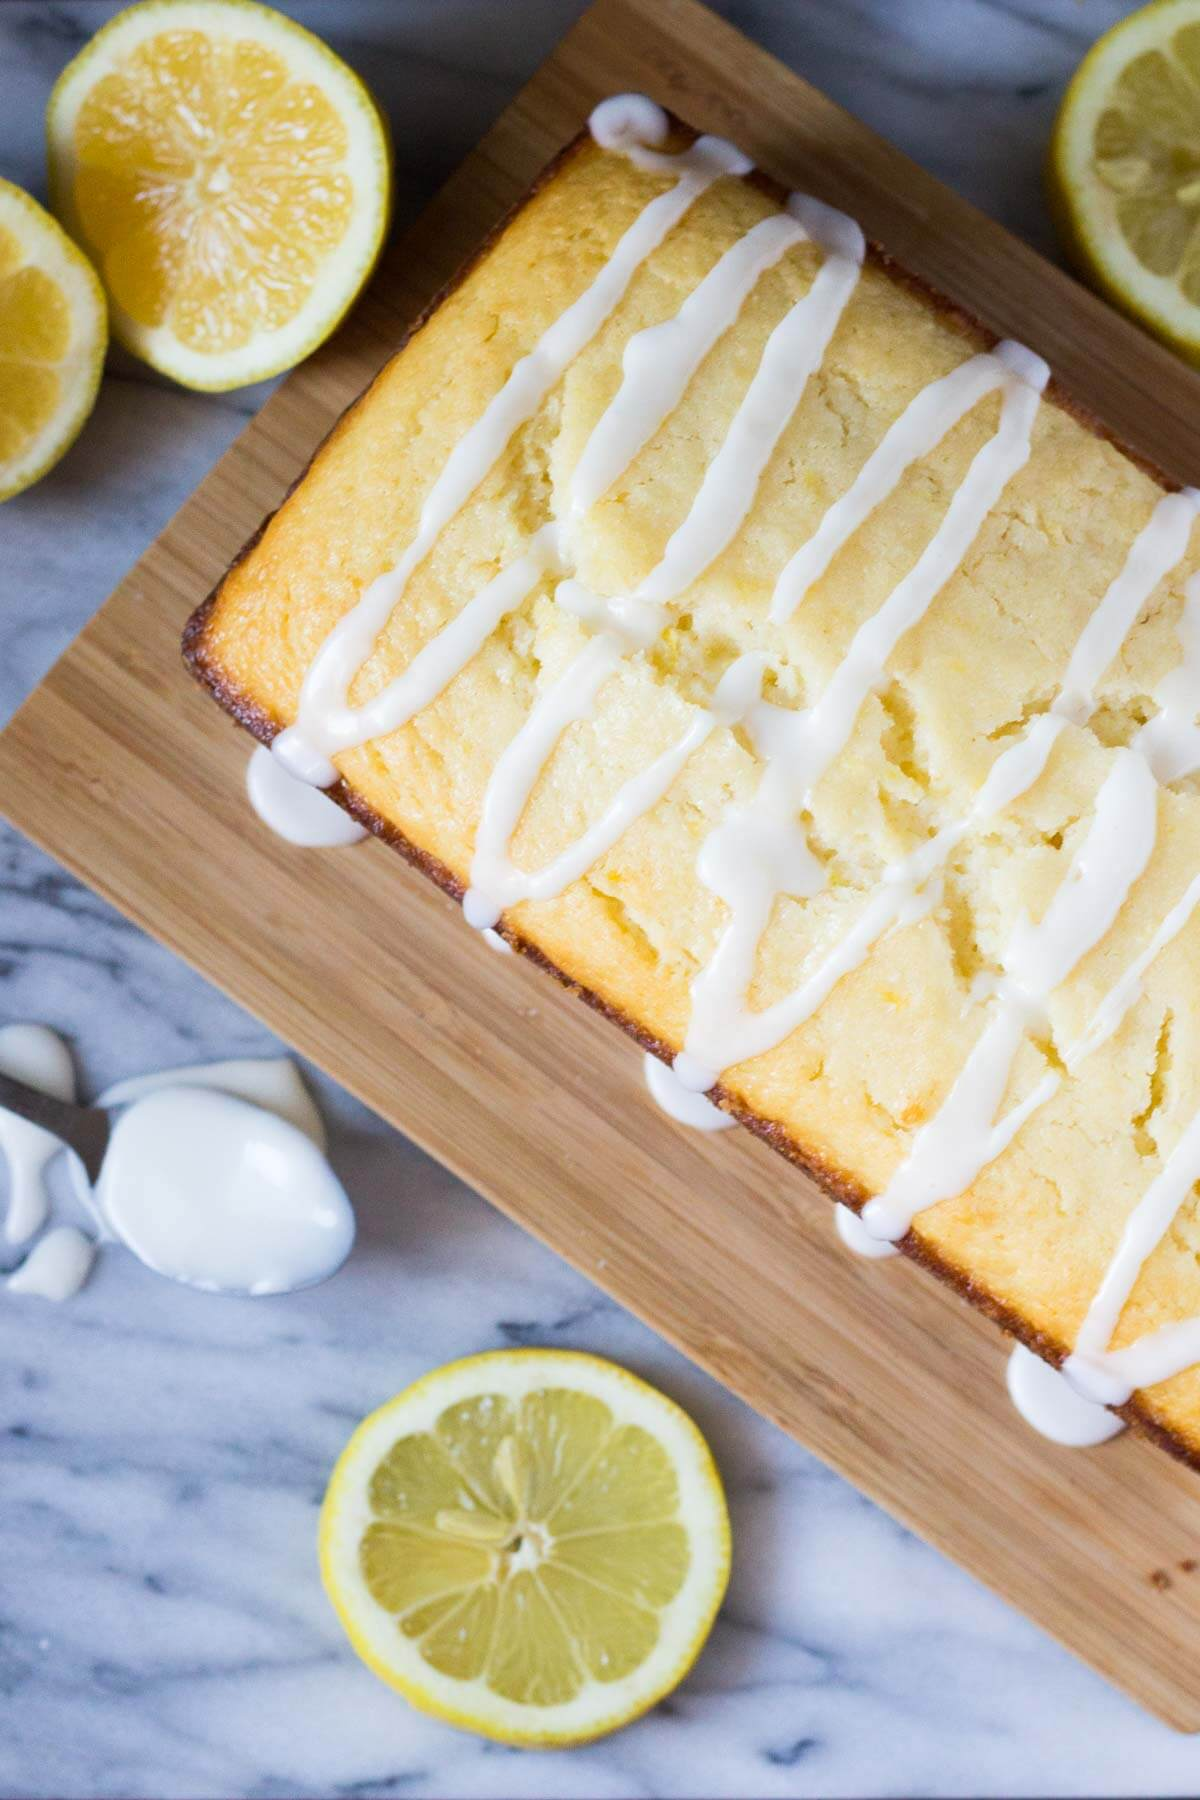 The softest, moistest lemon loaf. Bursting with fresh lemon flavor - this easy recipe is even better than the Starbucks version!